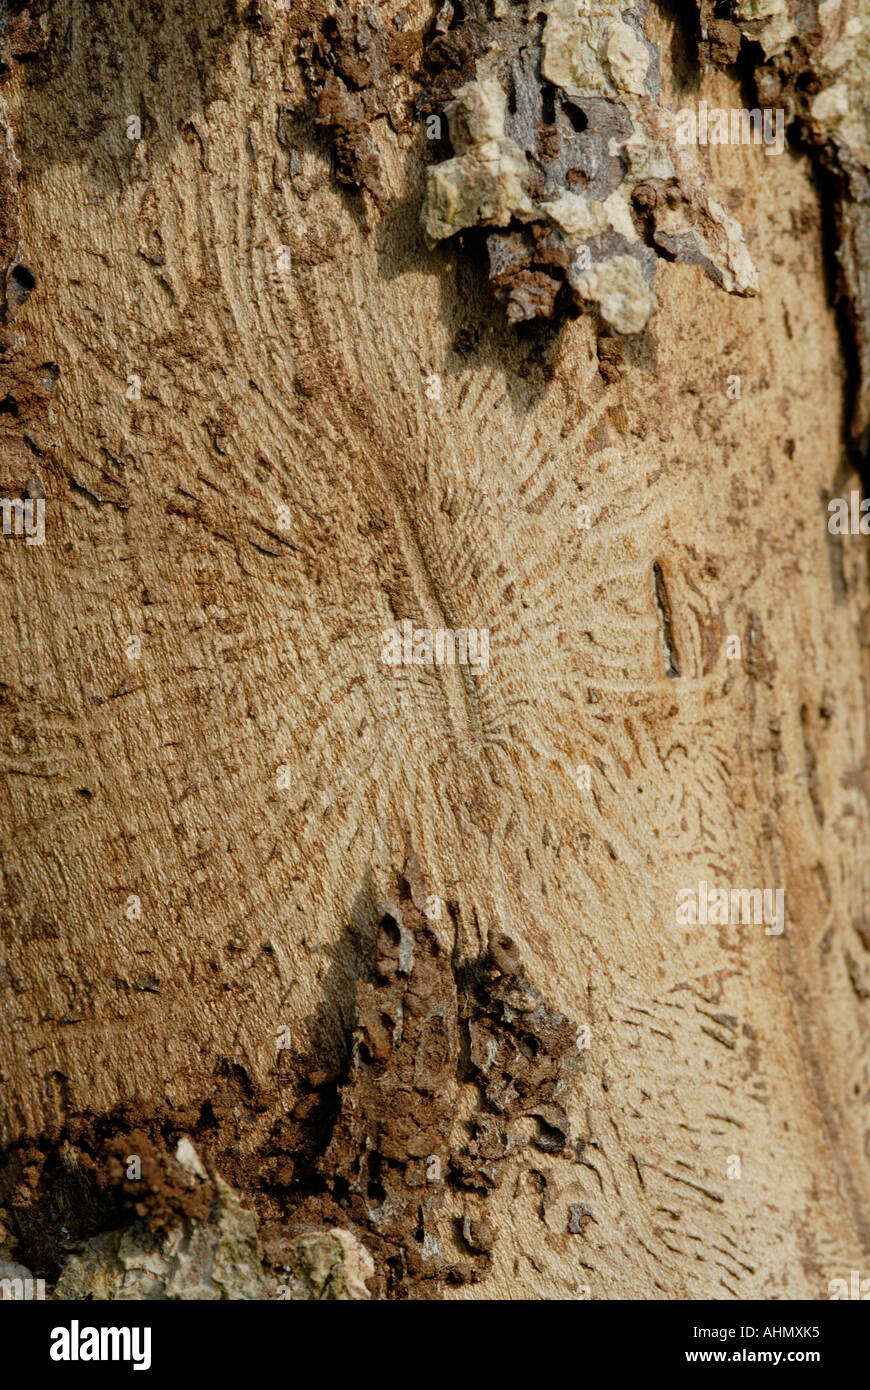 Brood gallery and radiating chamber made under the bark of an elm tree Ulmus species by an Elm Bark Beetle and its lava - Stock Image